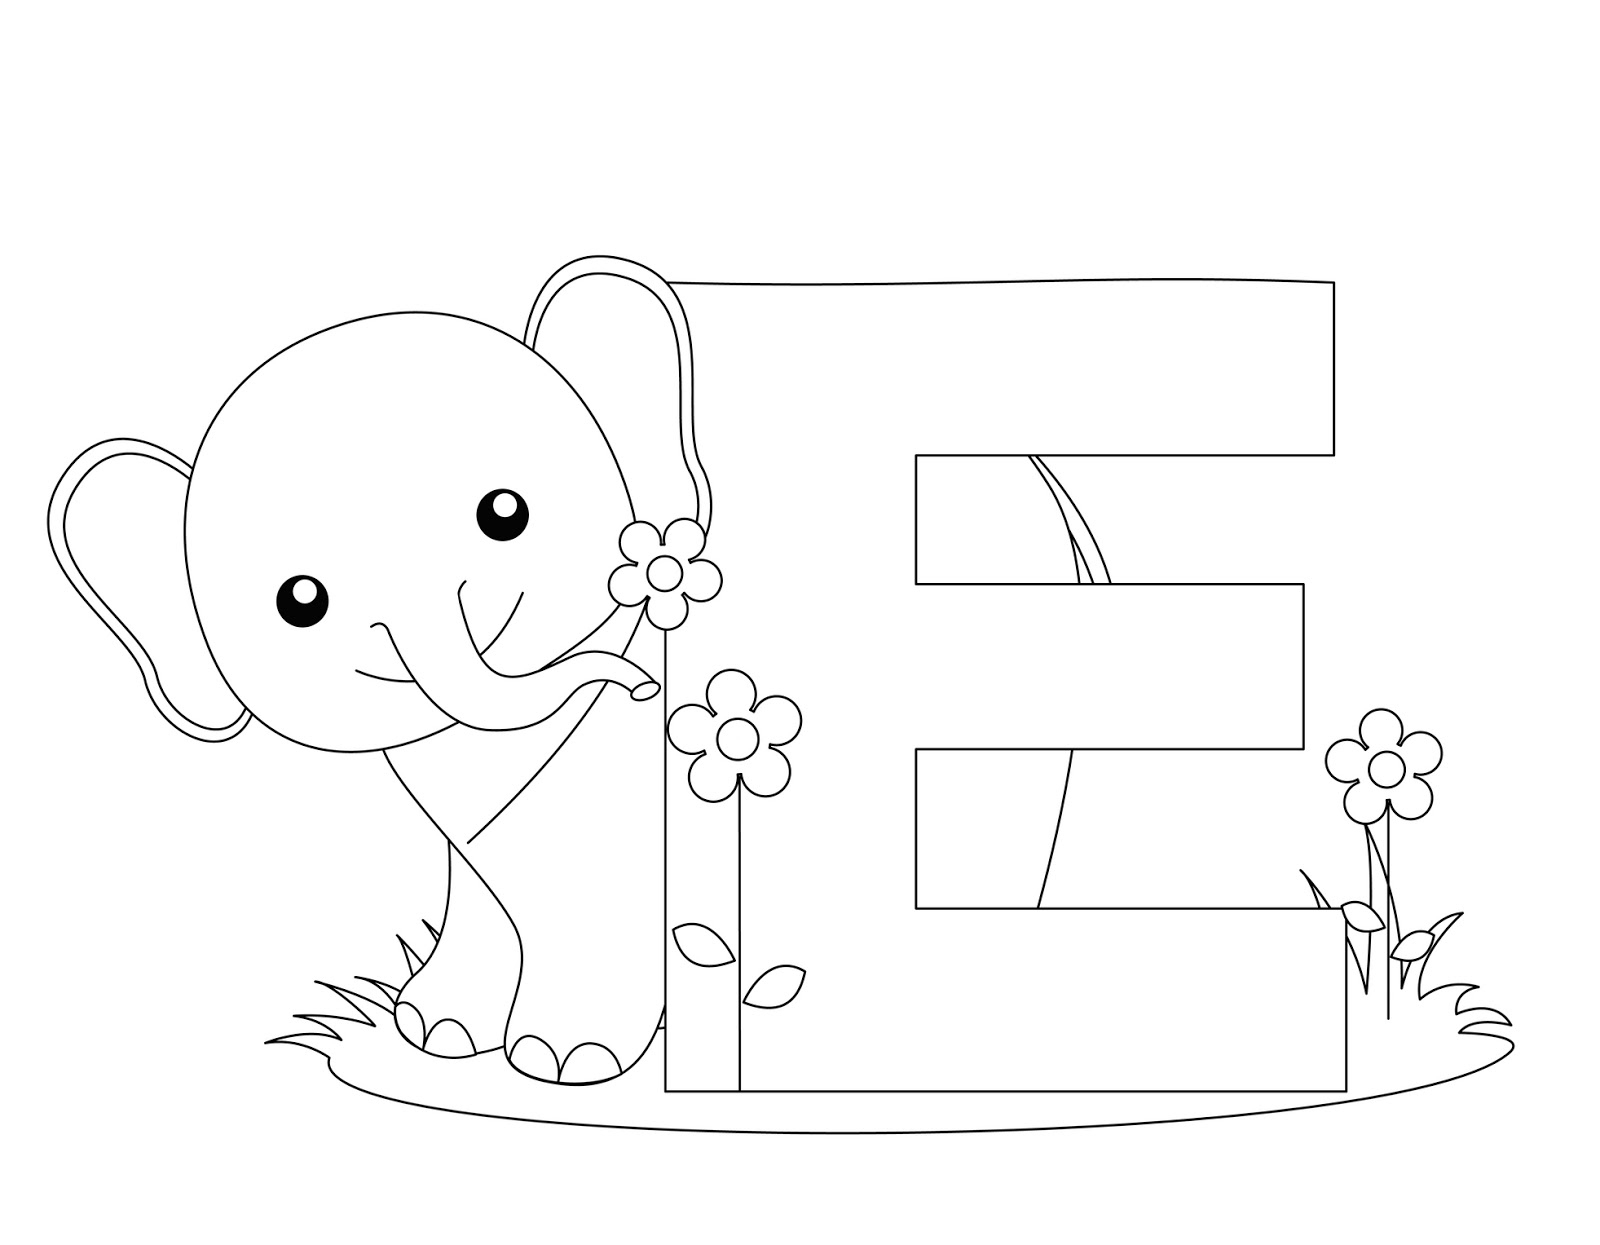 Coloring Pages : Free Coloring Pages Alphabet Letters Printable - Free Printable Alphabet Letters Coloring Pages